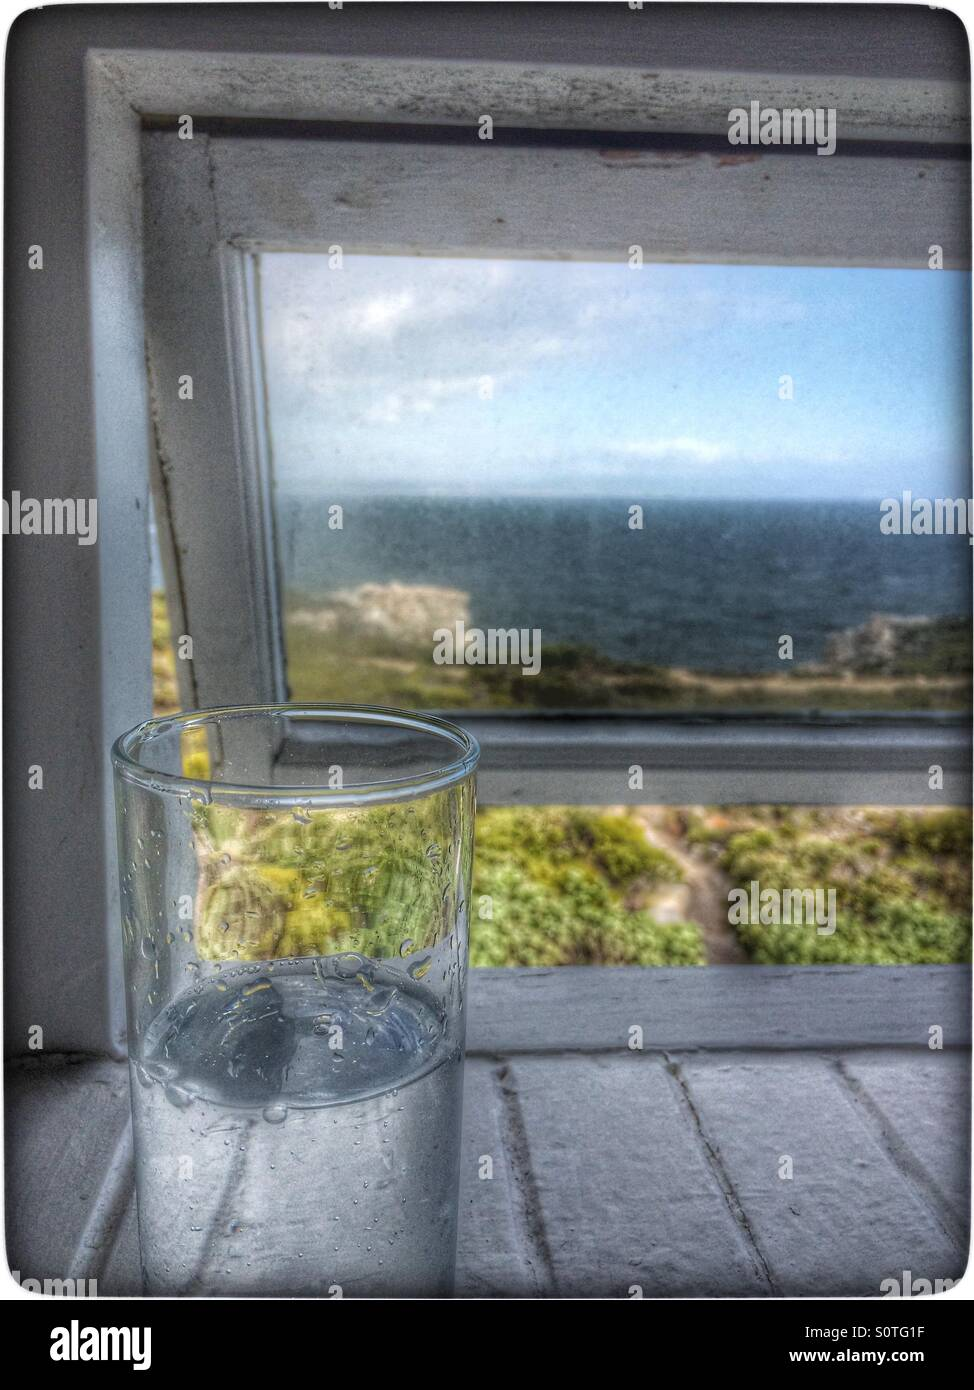 Drink and view. - Stock Image